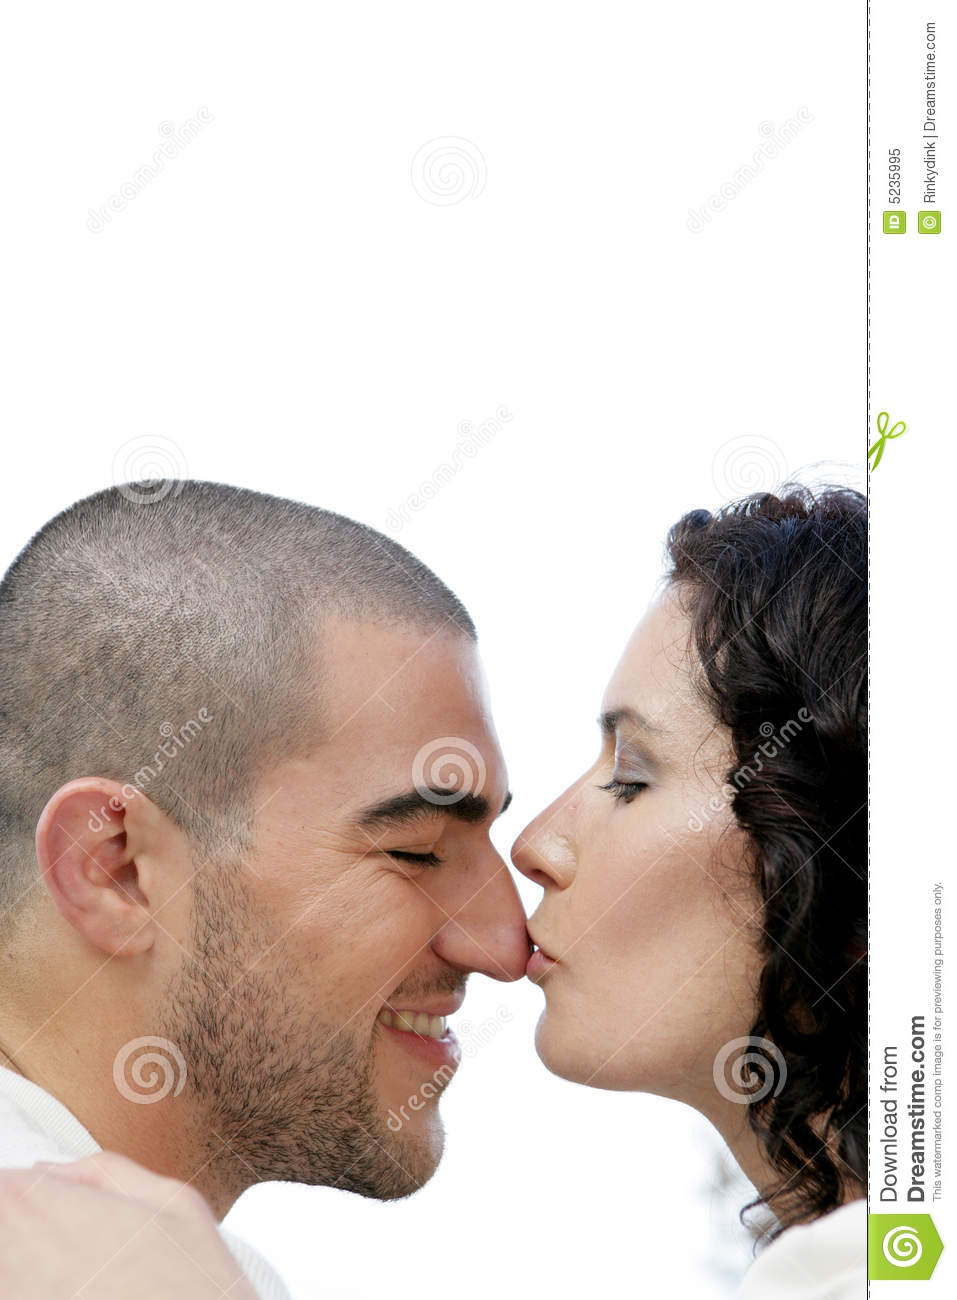 Kissing on the nose stock image. Image of caucasian, bald ...